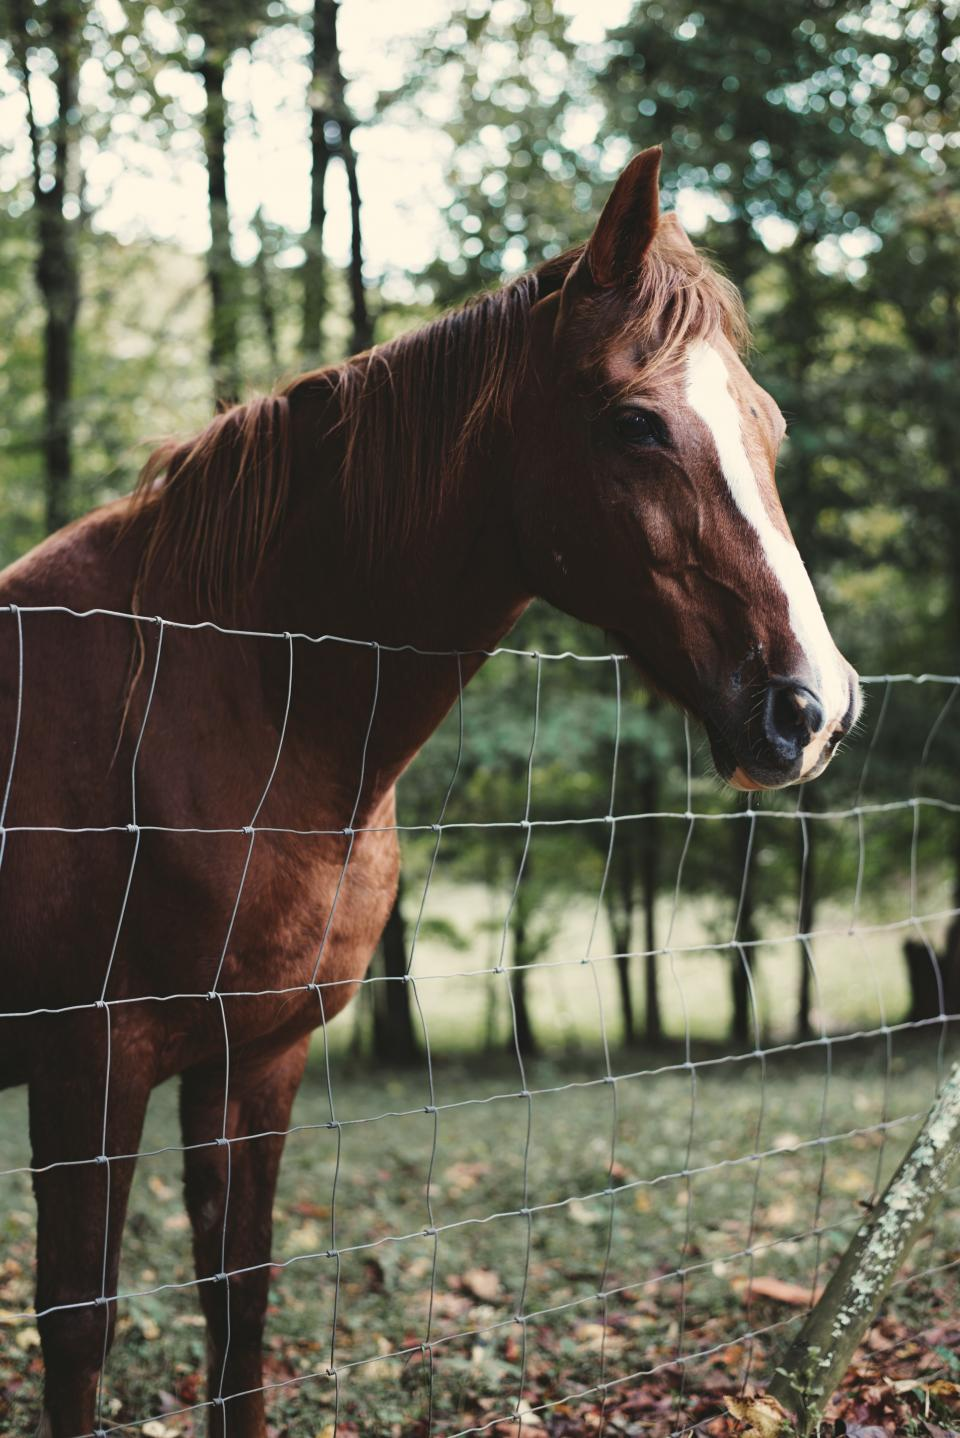 horse, animal, close up, brown, trees, grass, leaves, autumn, fall, fence